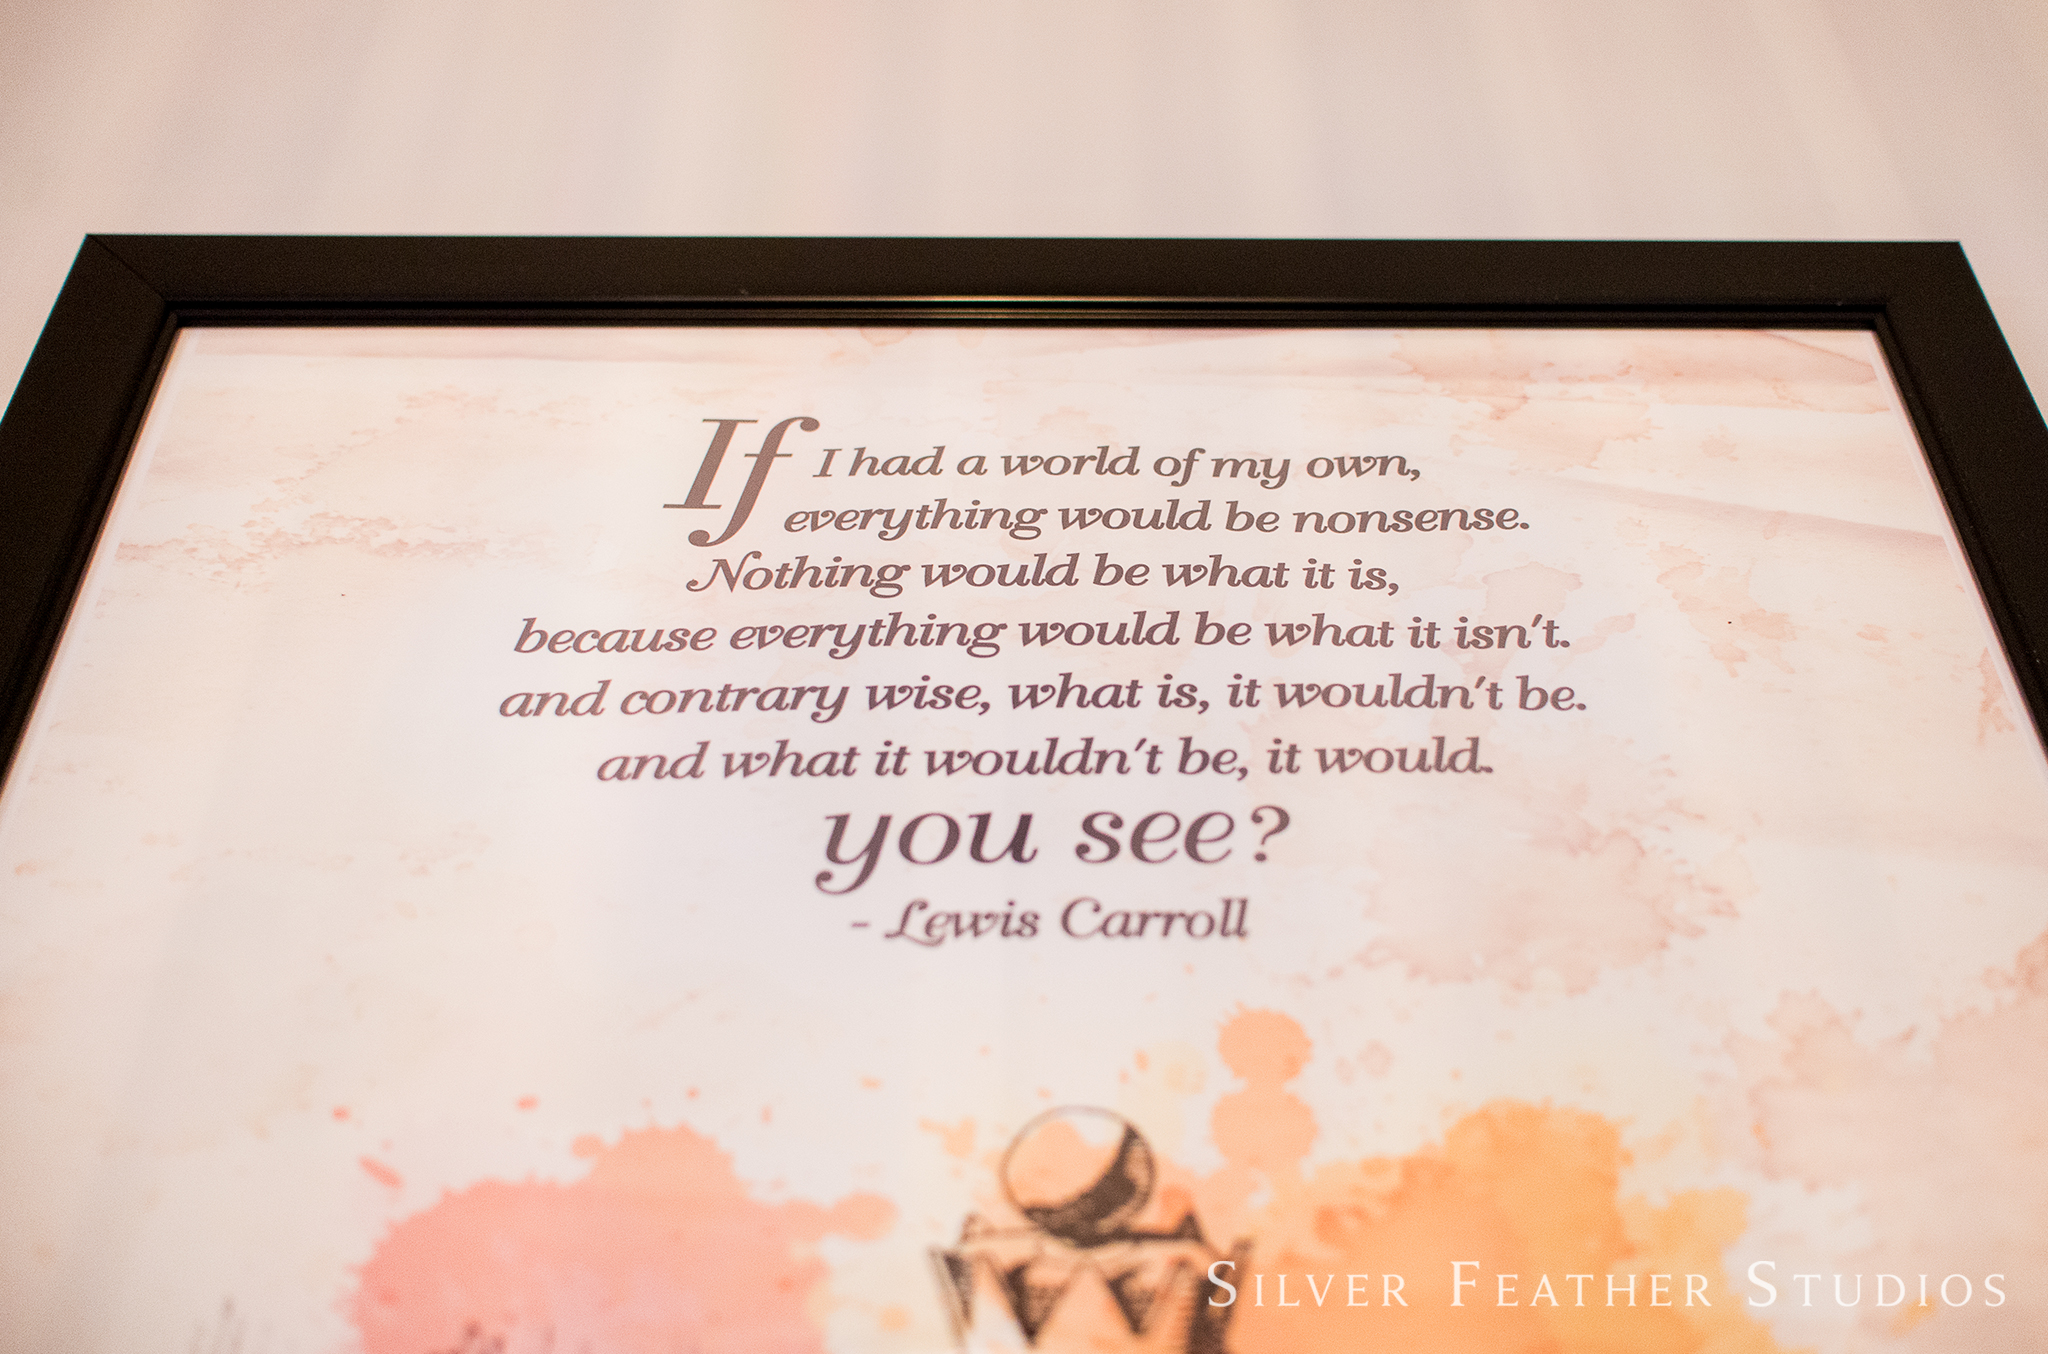 Framed Lewis Carroll quote at this Alice in Wonderland themed wedding event.